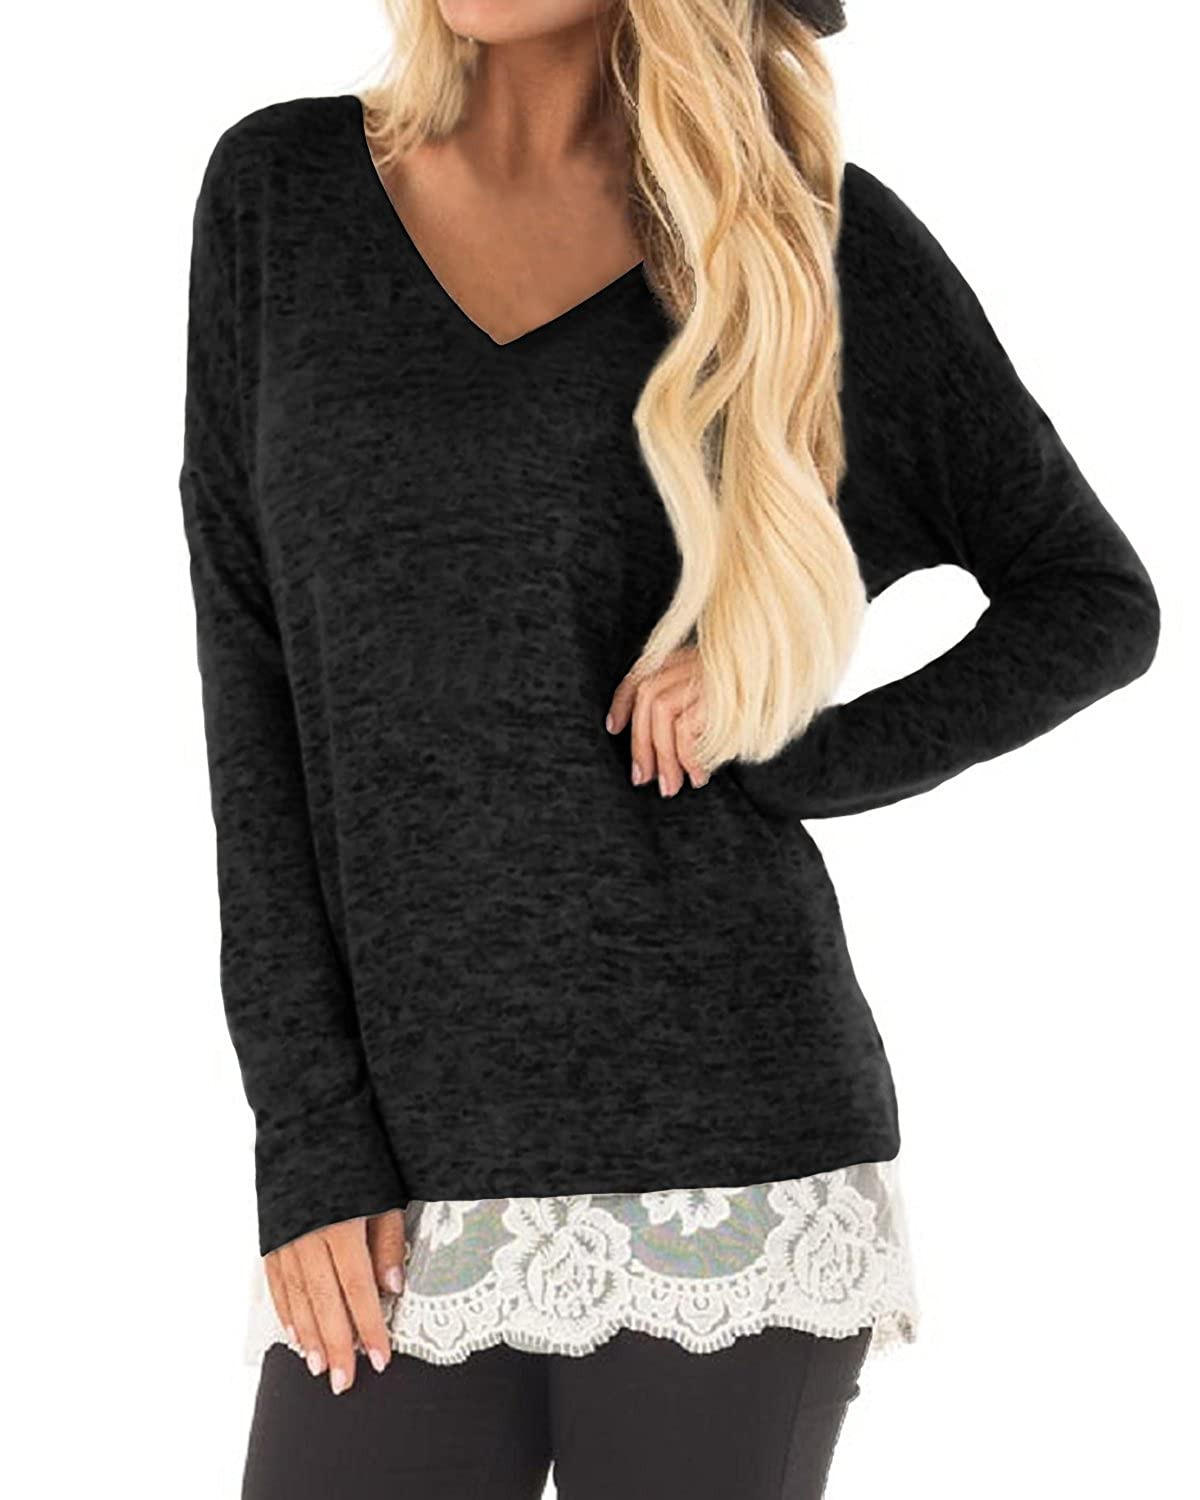 15b17b861cb3 Style: Flowy Tunic Tops,Cute Lace Hem Details On Front ,Casual Long Sleeve  T-Shirt Dress for Women. Features: Round Neck, Solid Colors, Long Sleeve,  ...